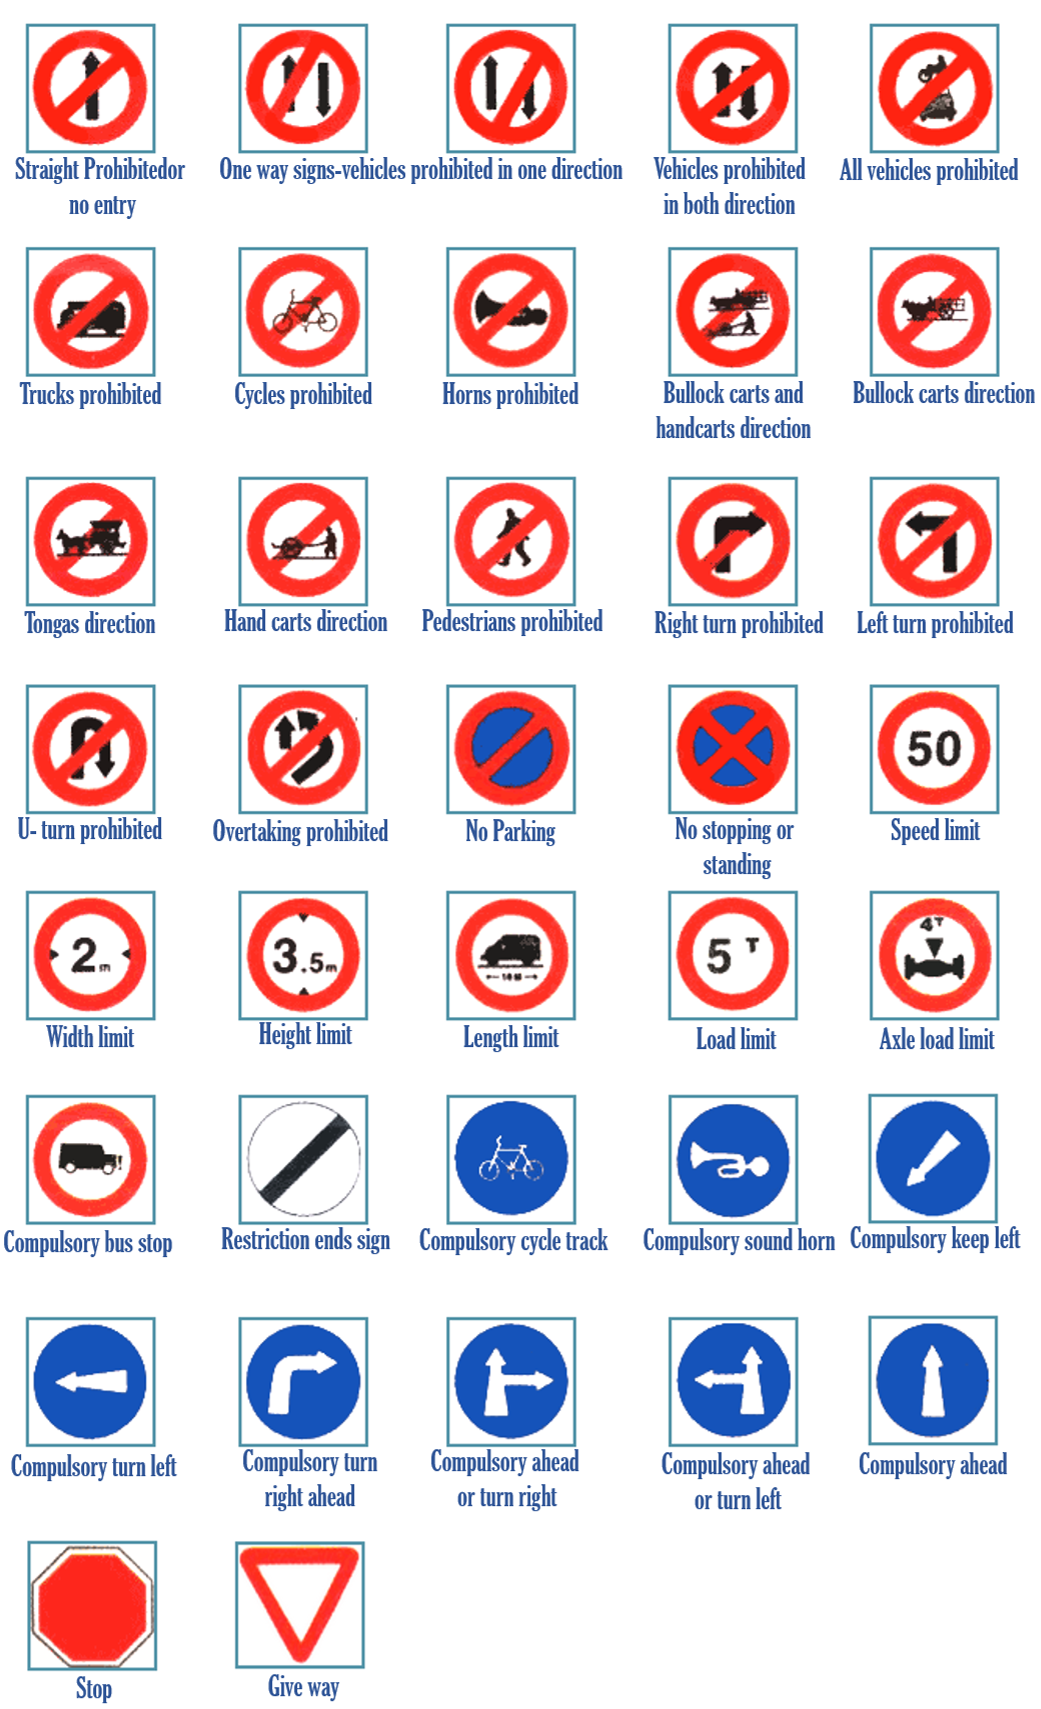 Road safety rules cautionary signs